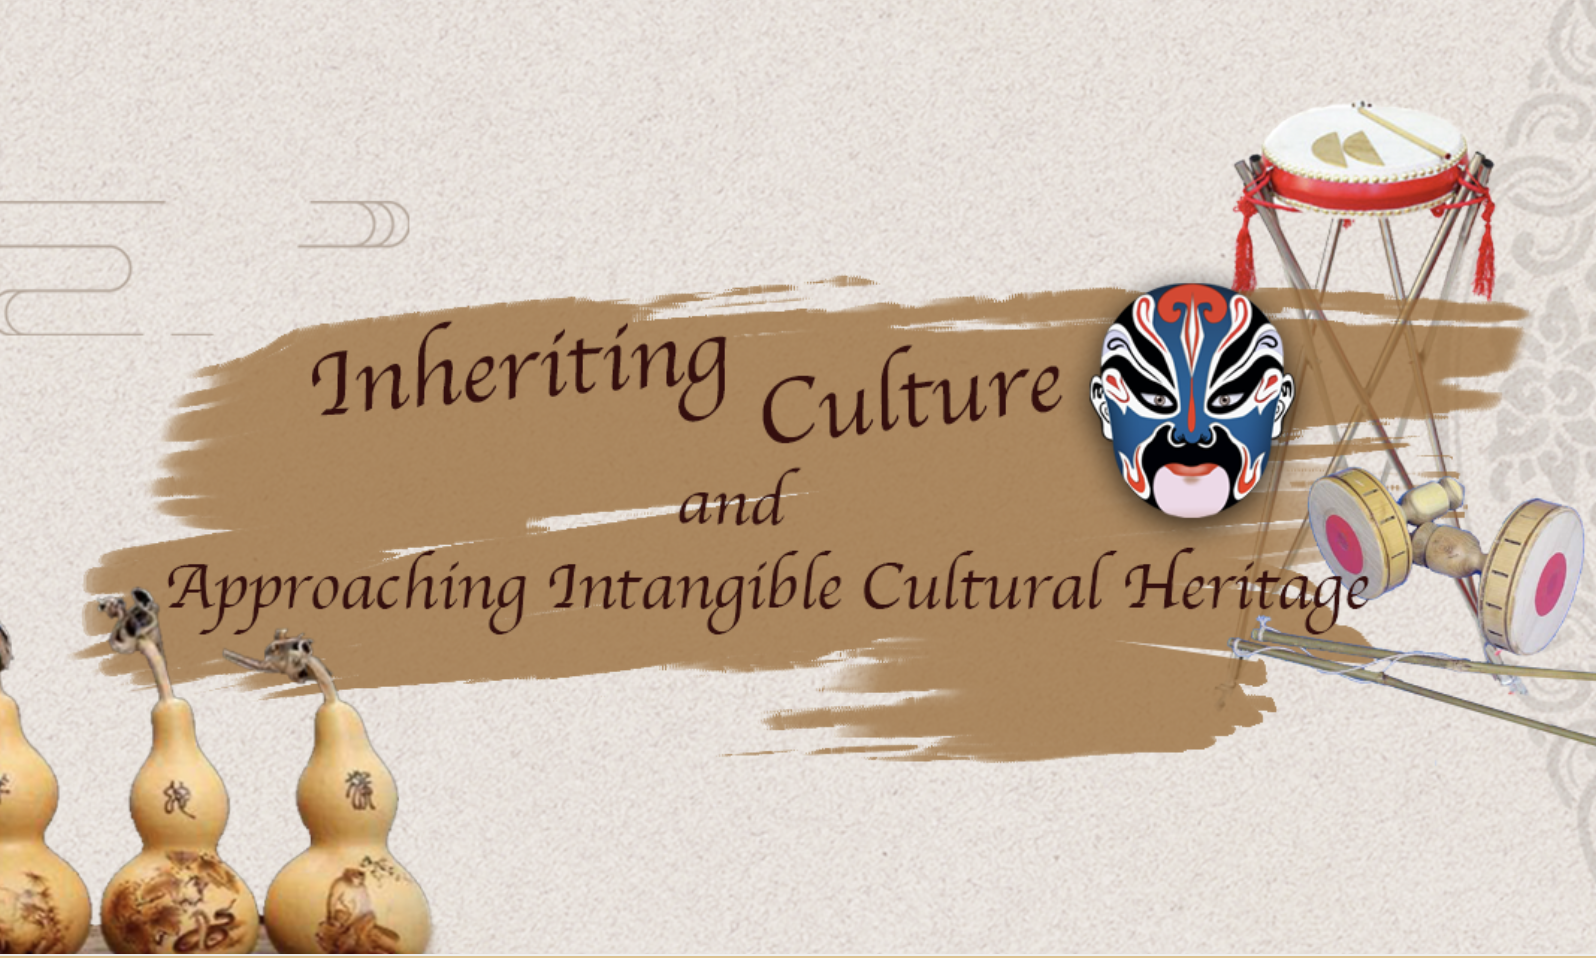 Inheriting Culture and Approaching Intangible Cultural Heritage